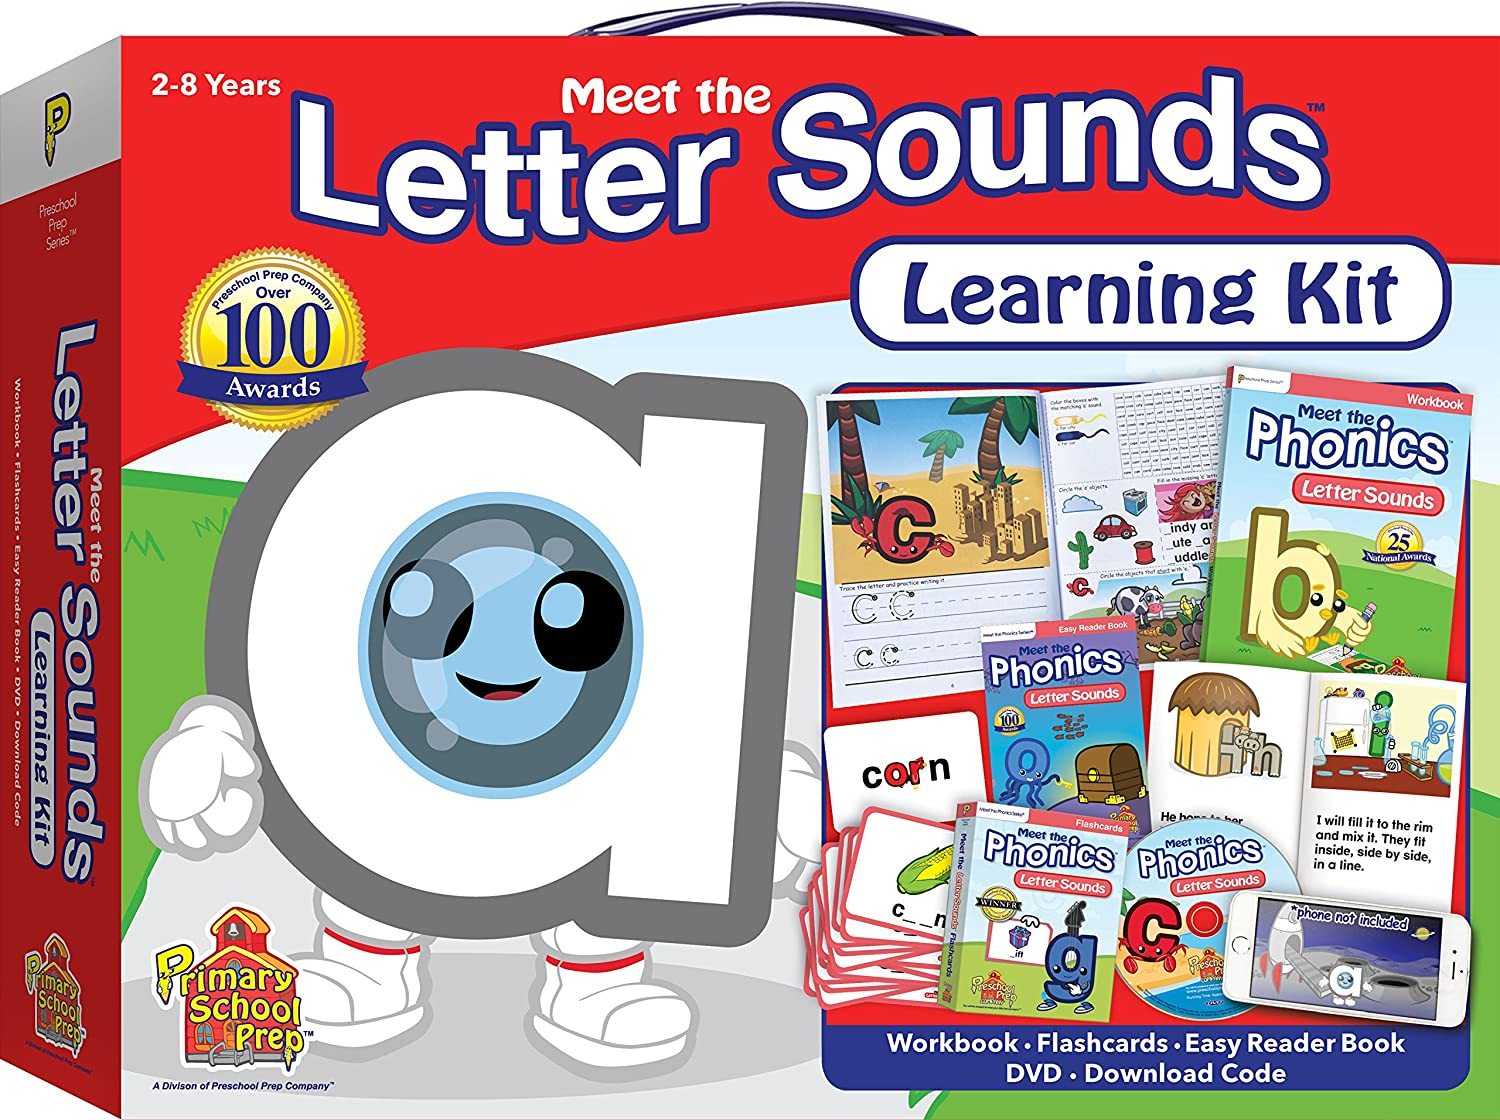 Cartoon Characters 8 Letters : Amazon.com: meet the letters sounds learning kit: preschool prep